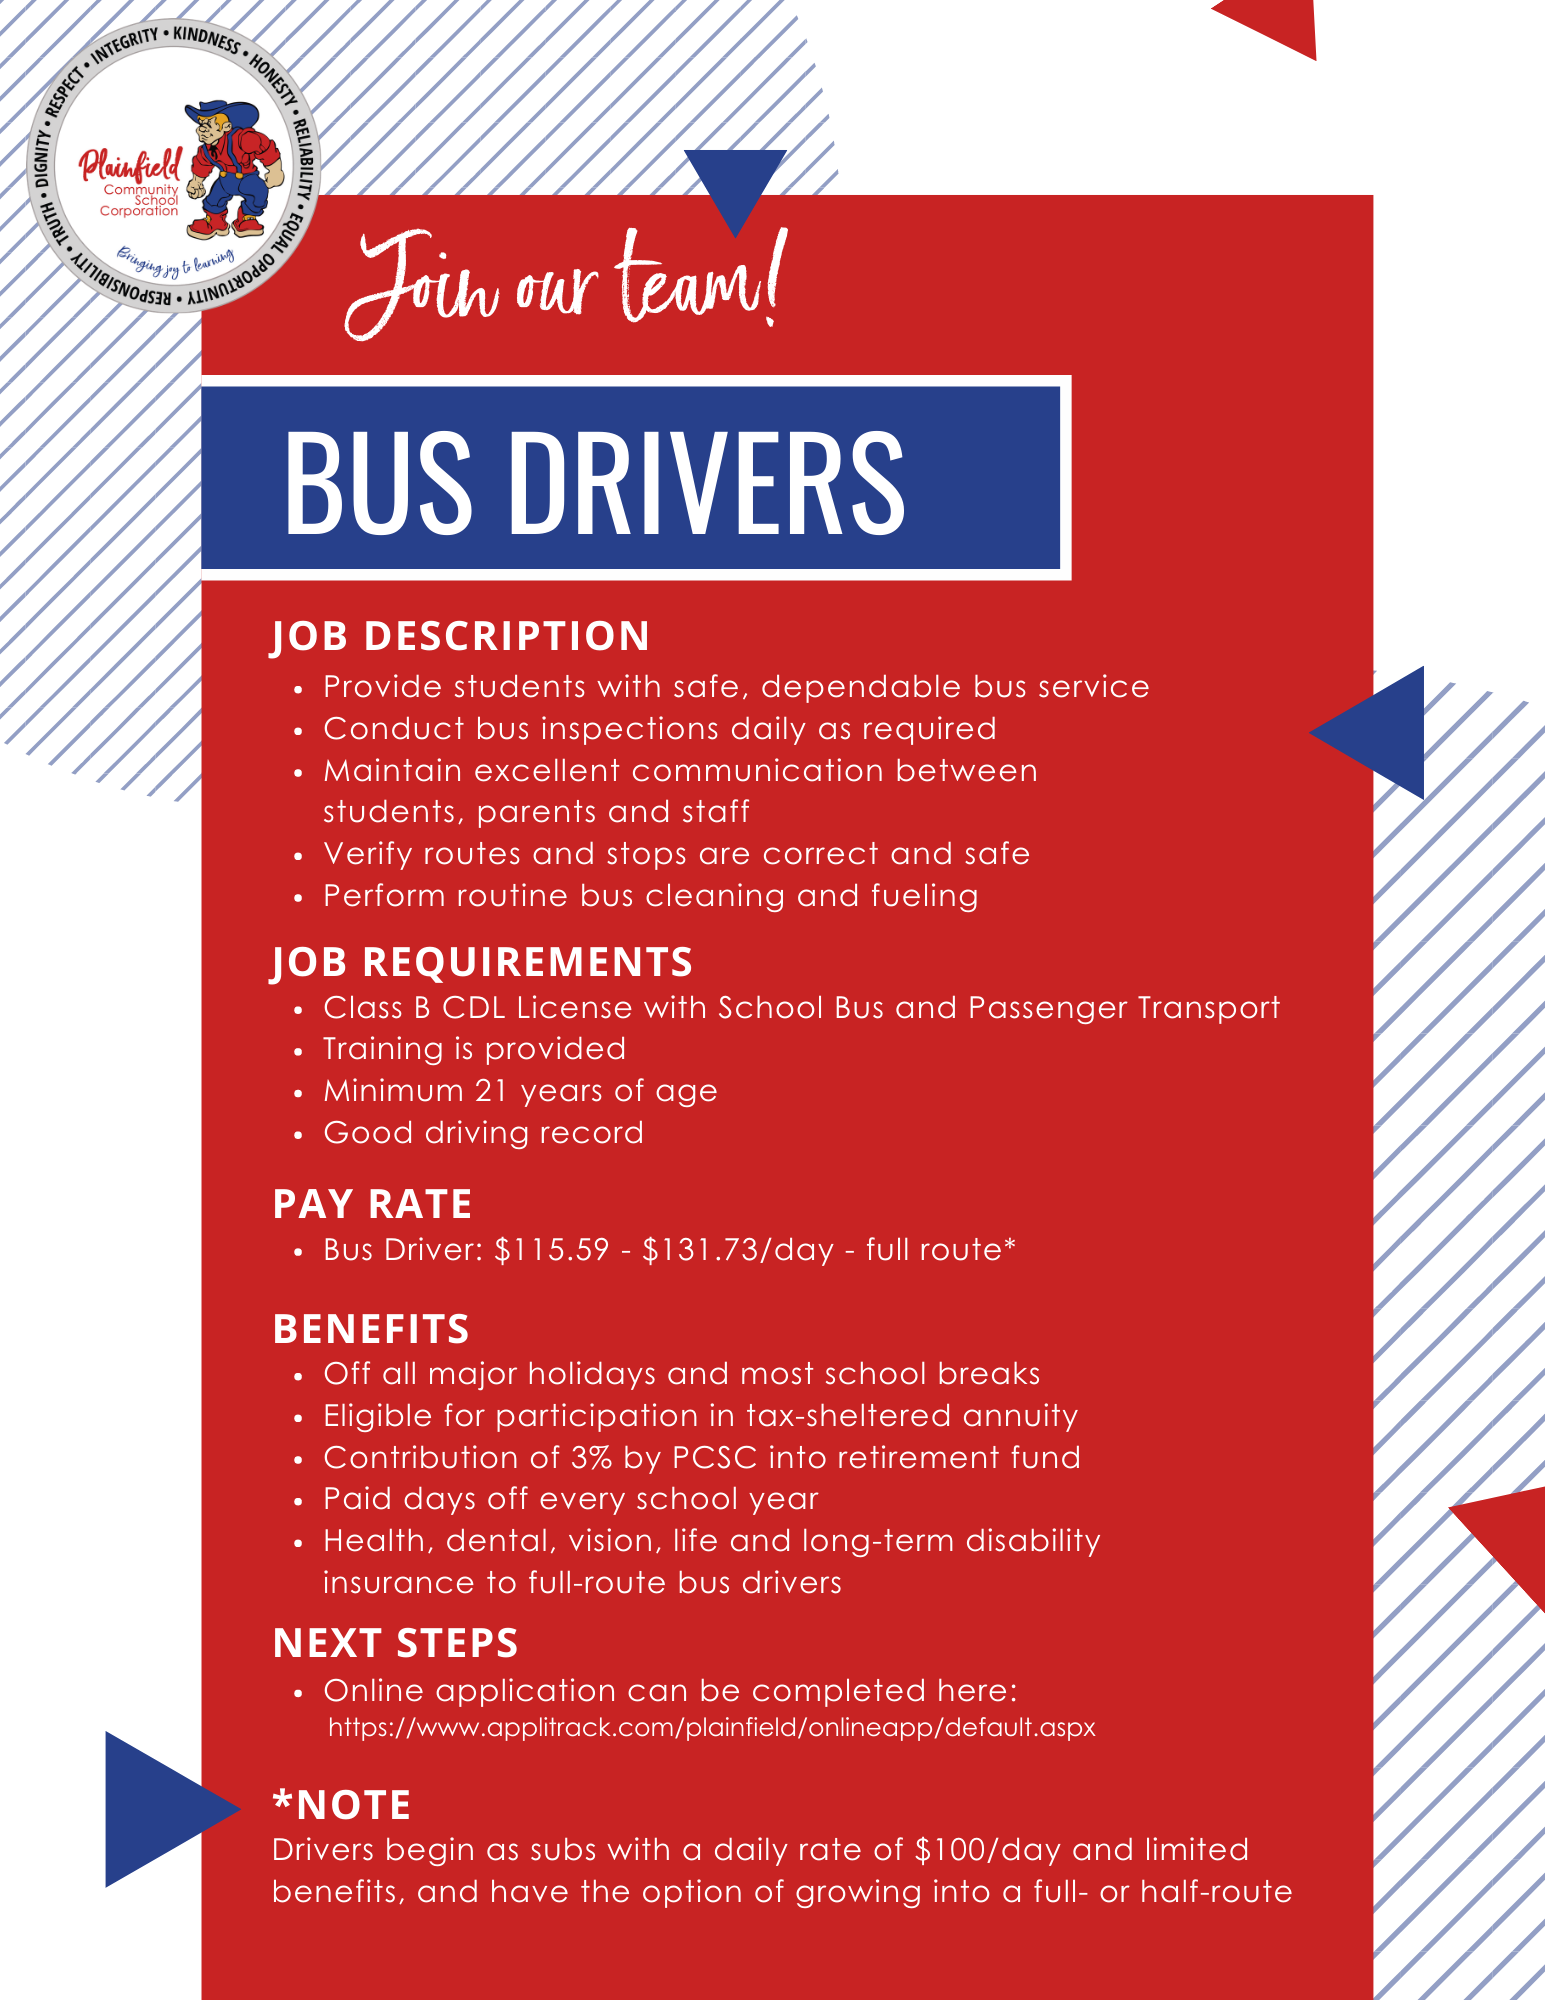 Details about being a bus driver with Plainfield Schools